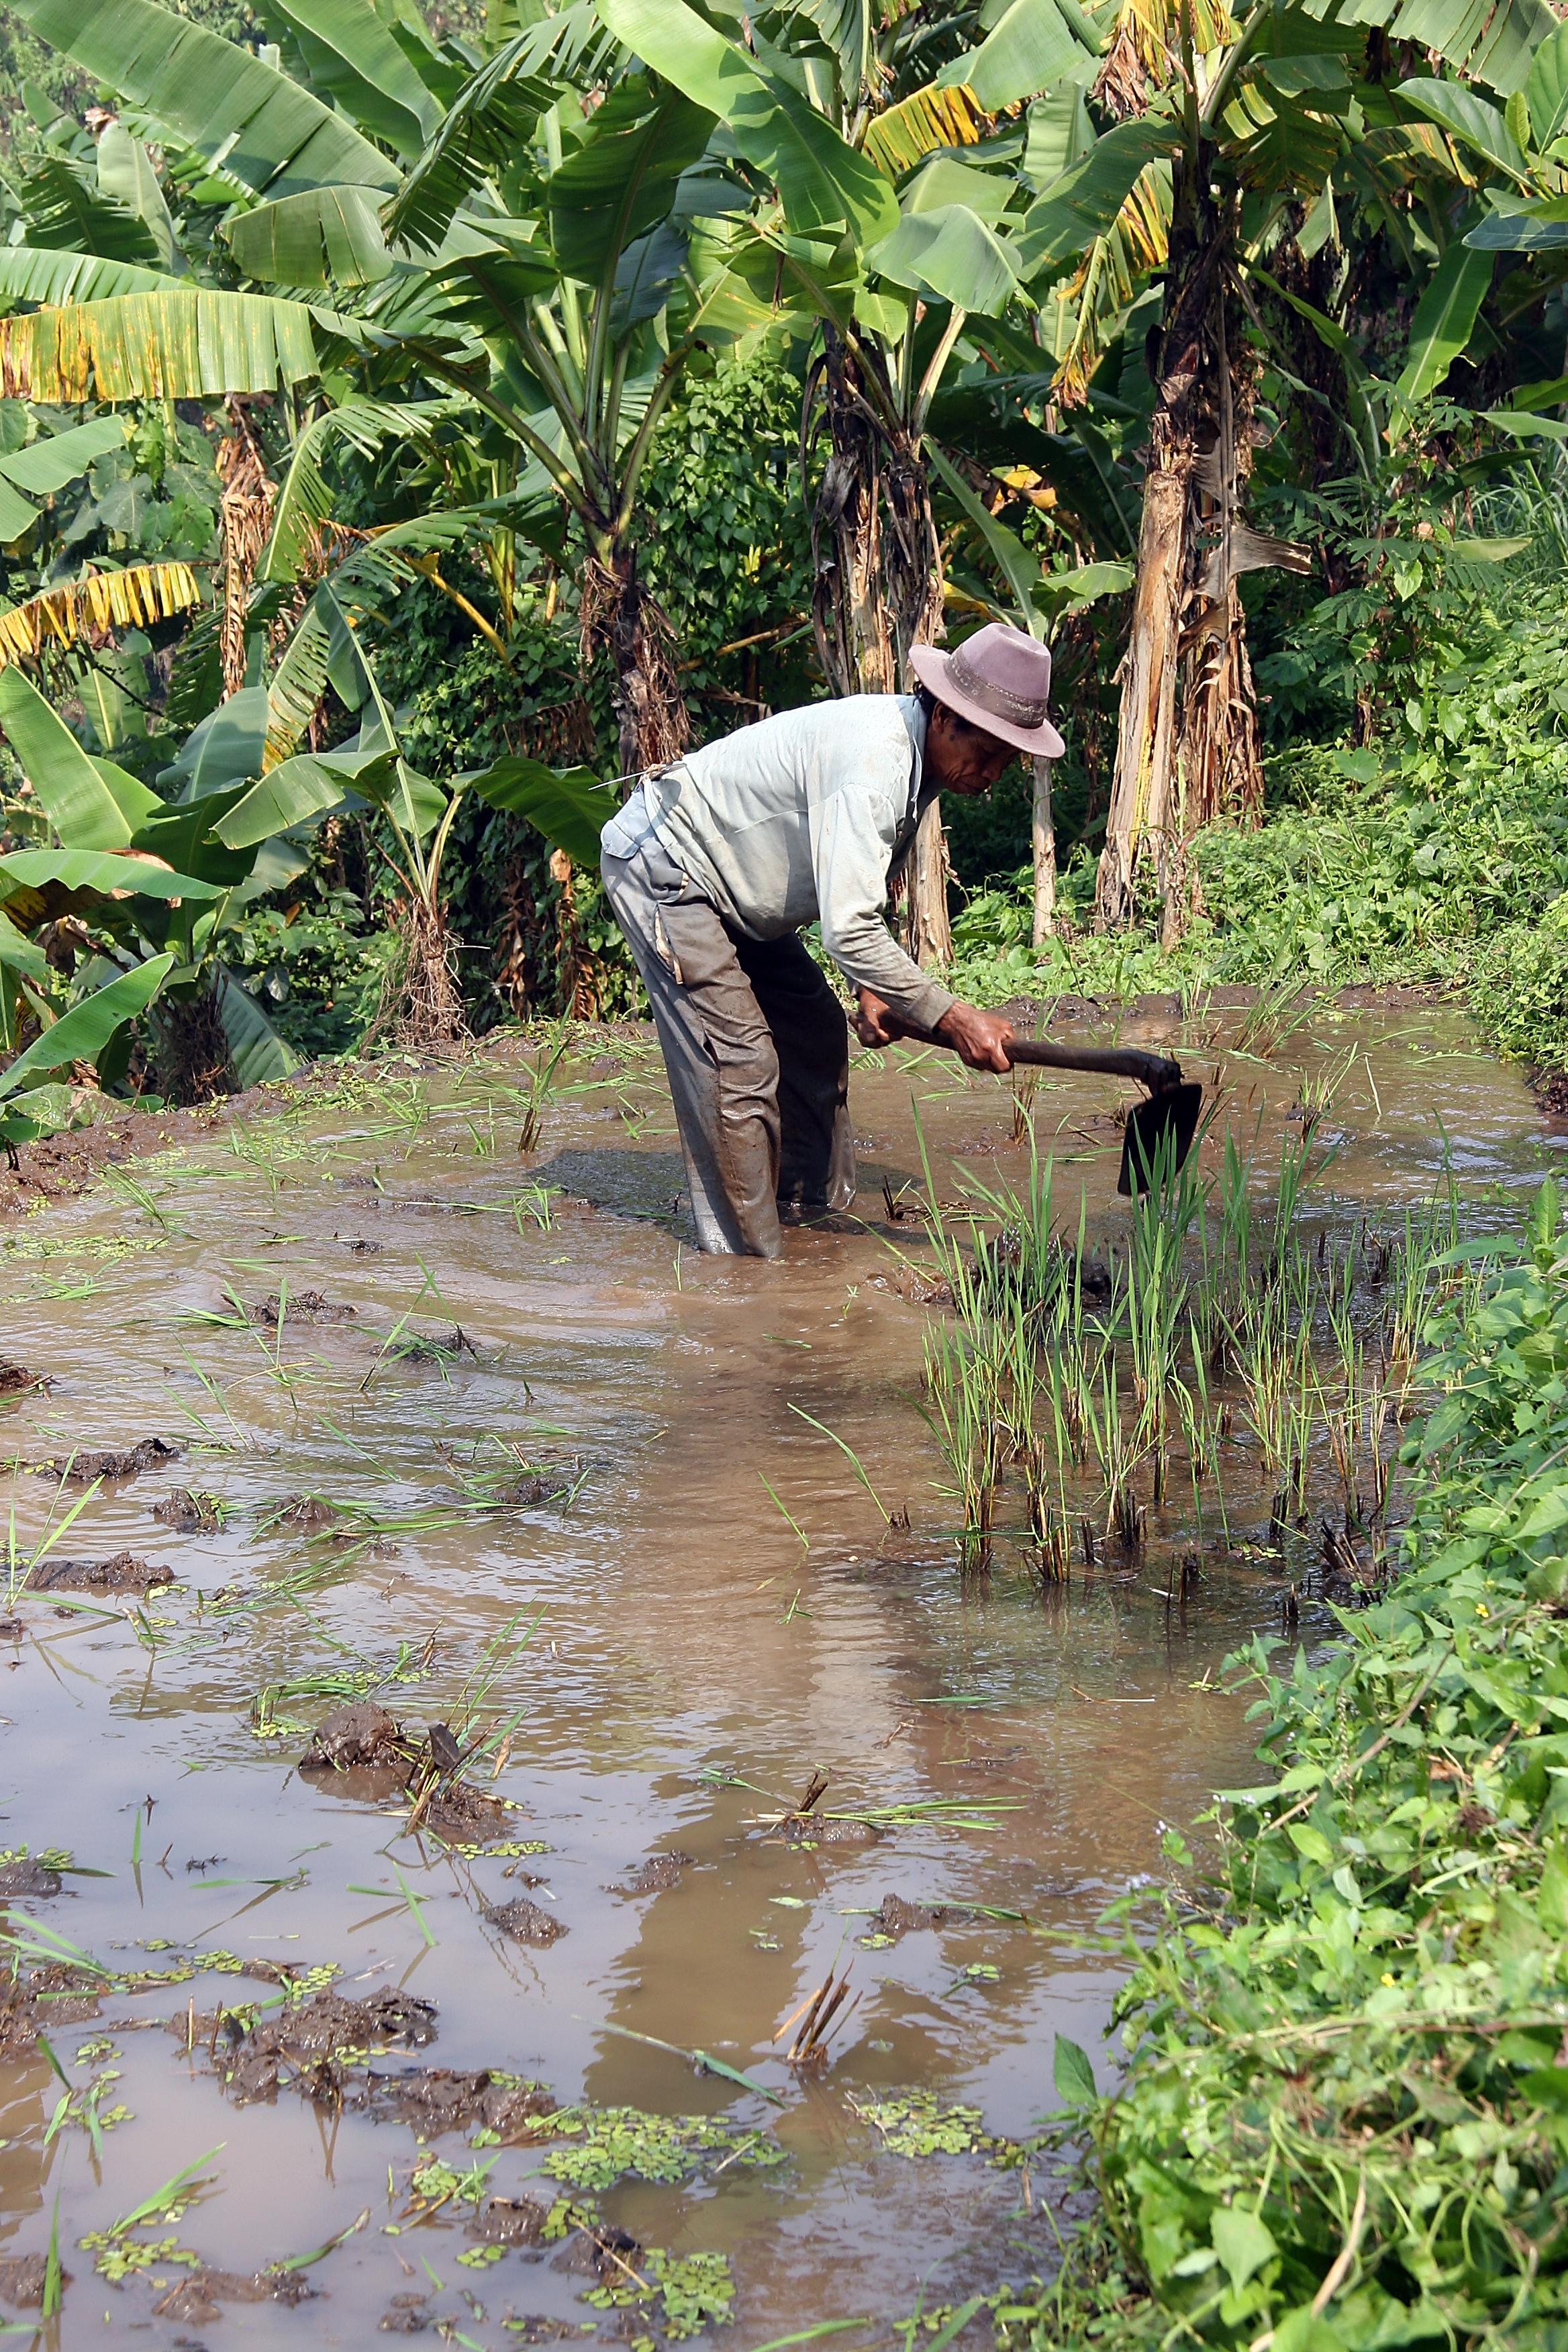 cultivating the rice paddies, Java Indonesia.jpg - Indonesia Java cultivating the rice paddies